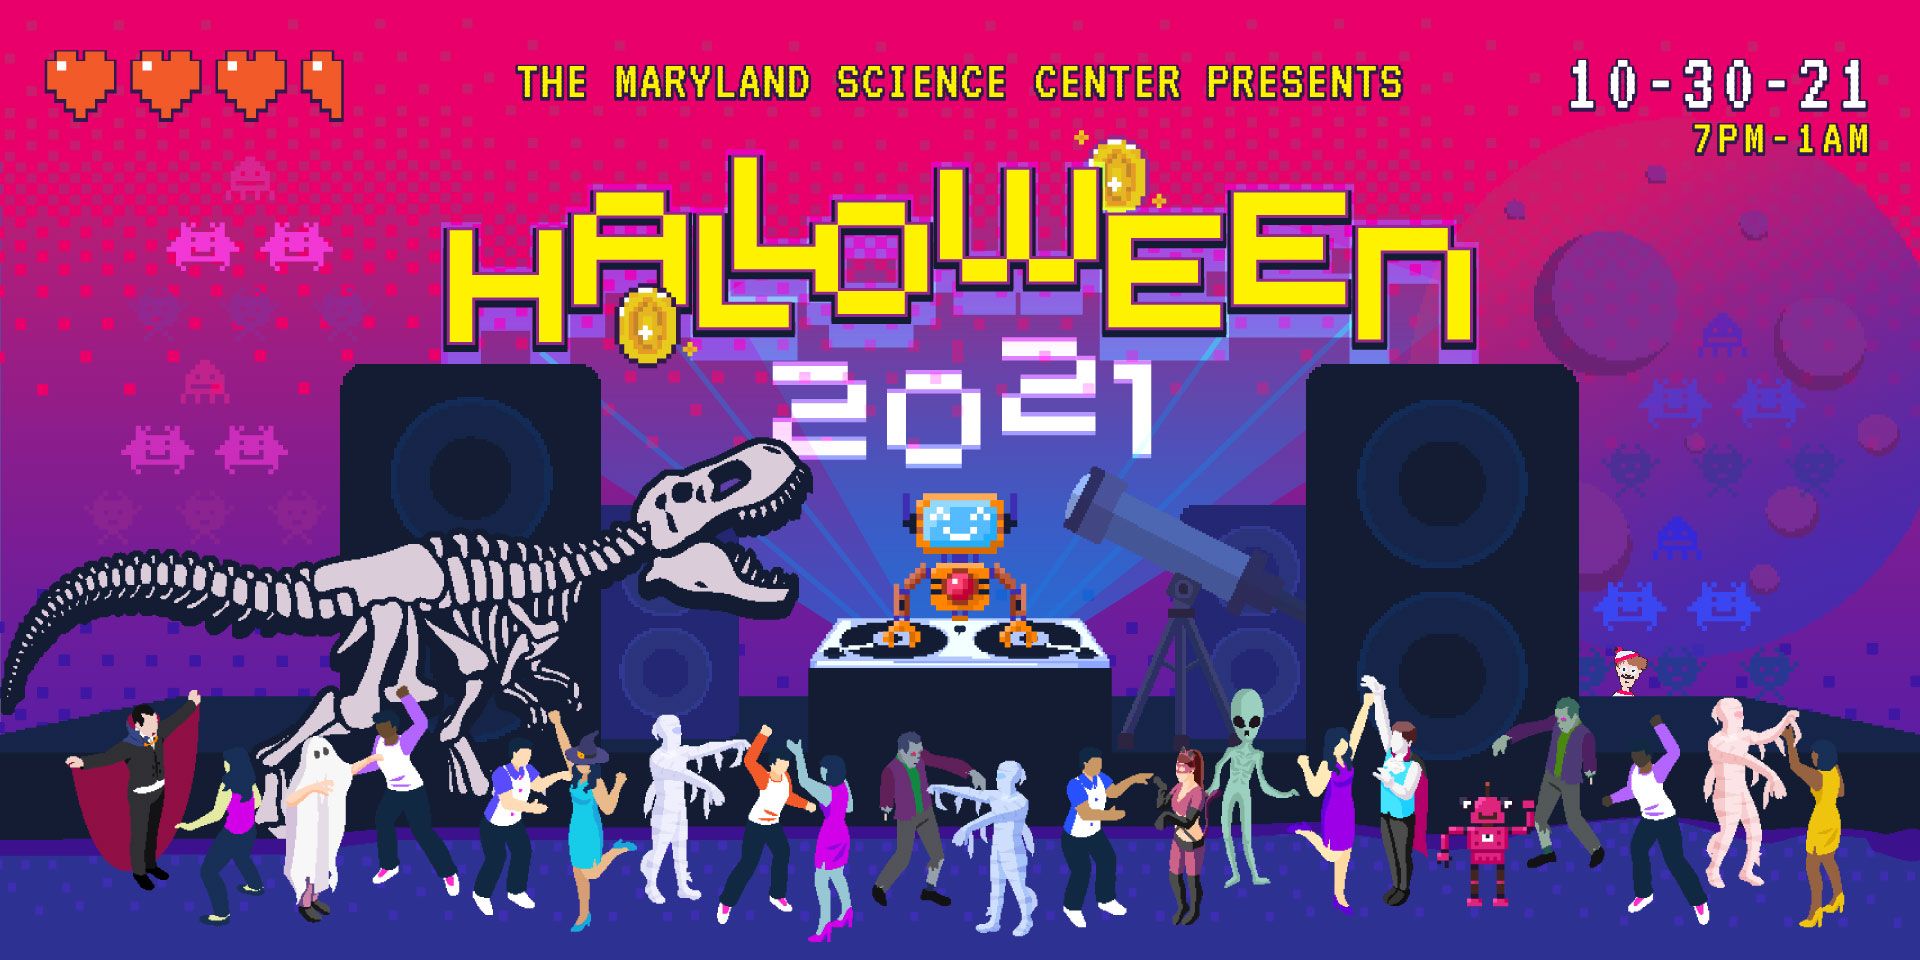 The Maryland Science Center Presents Halloween 2021